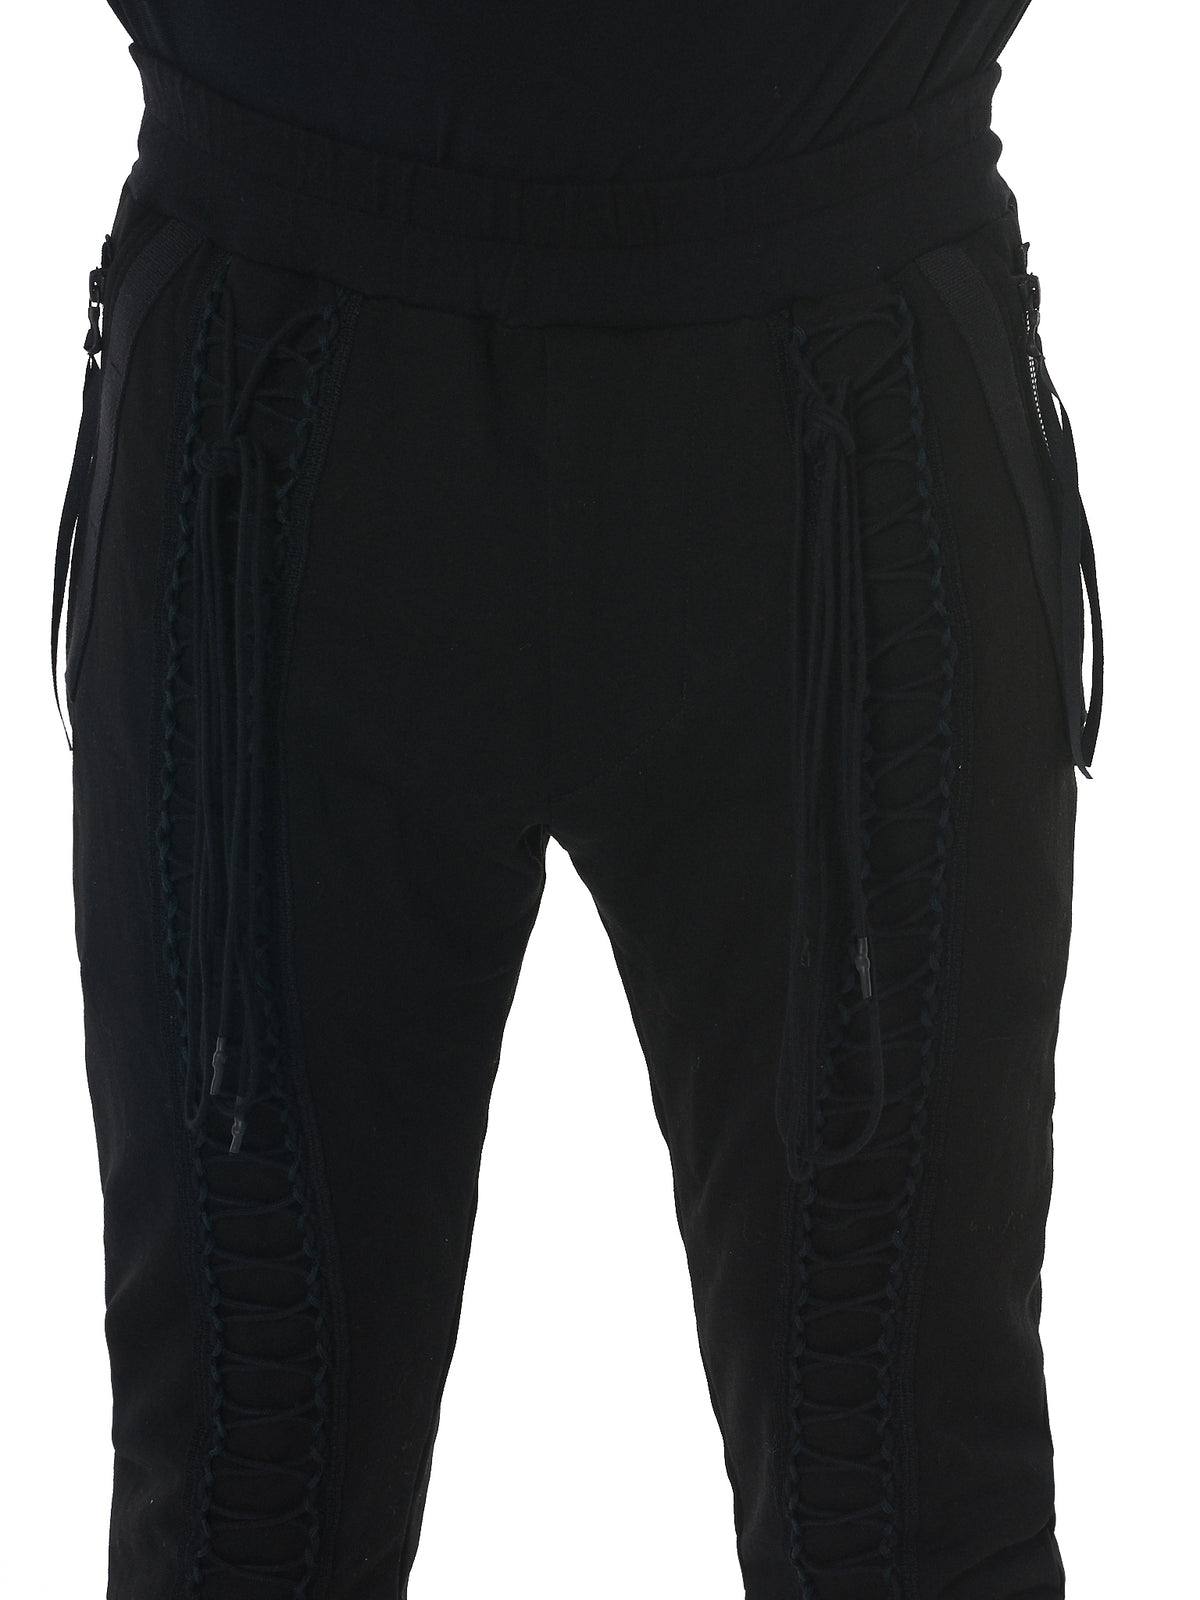 Julius Lace-Up Pants - Hlorenzo Detail 2